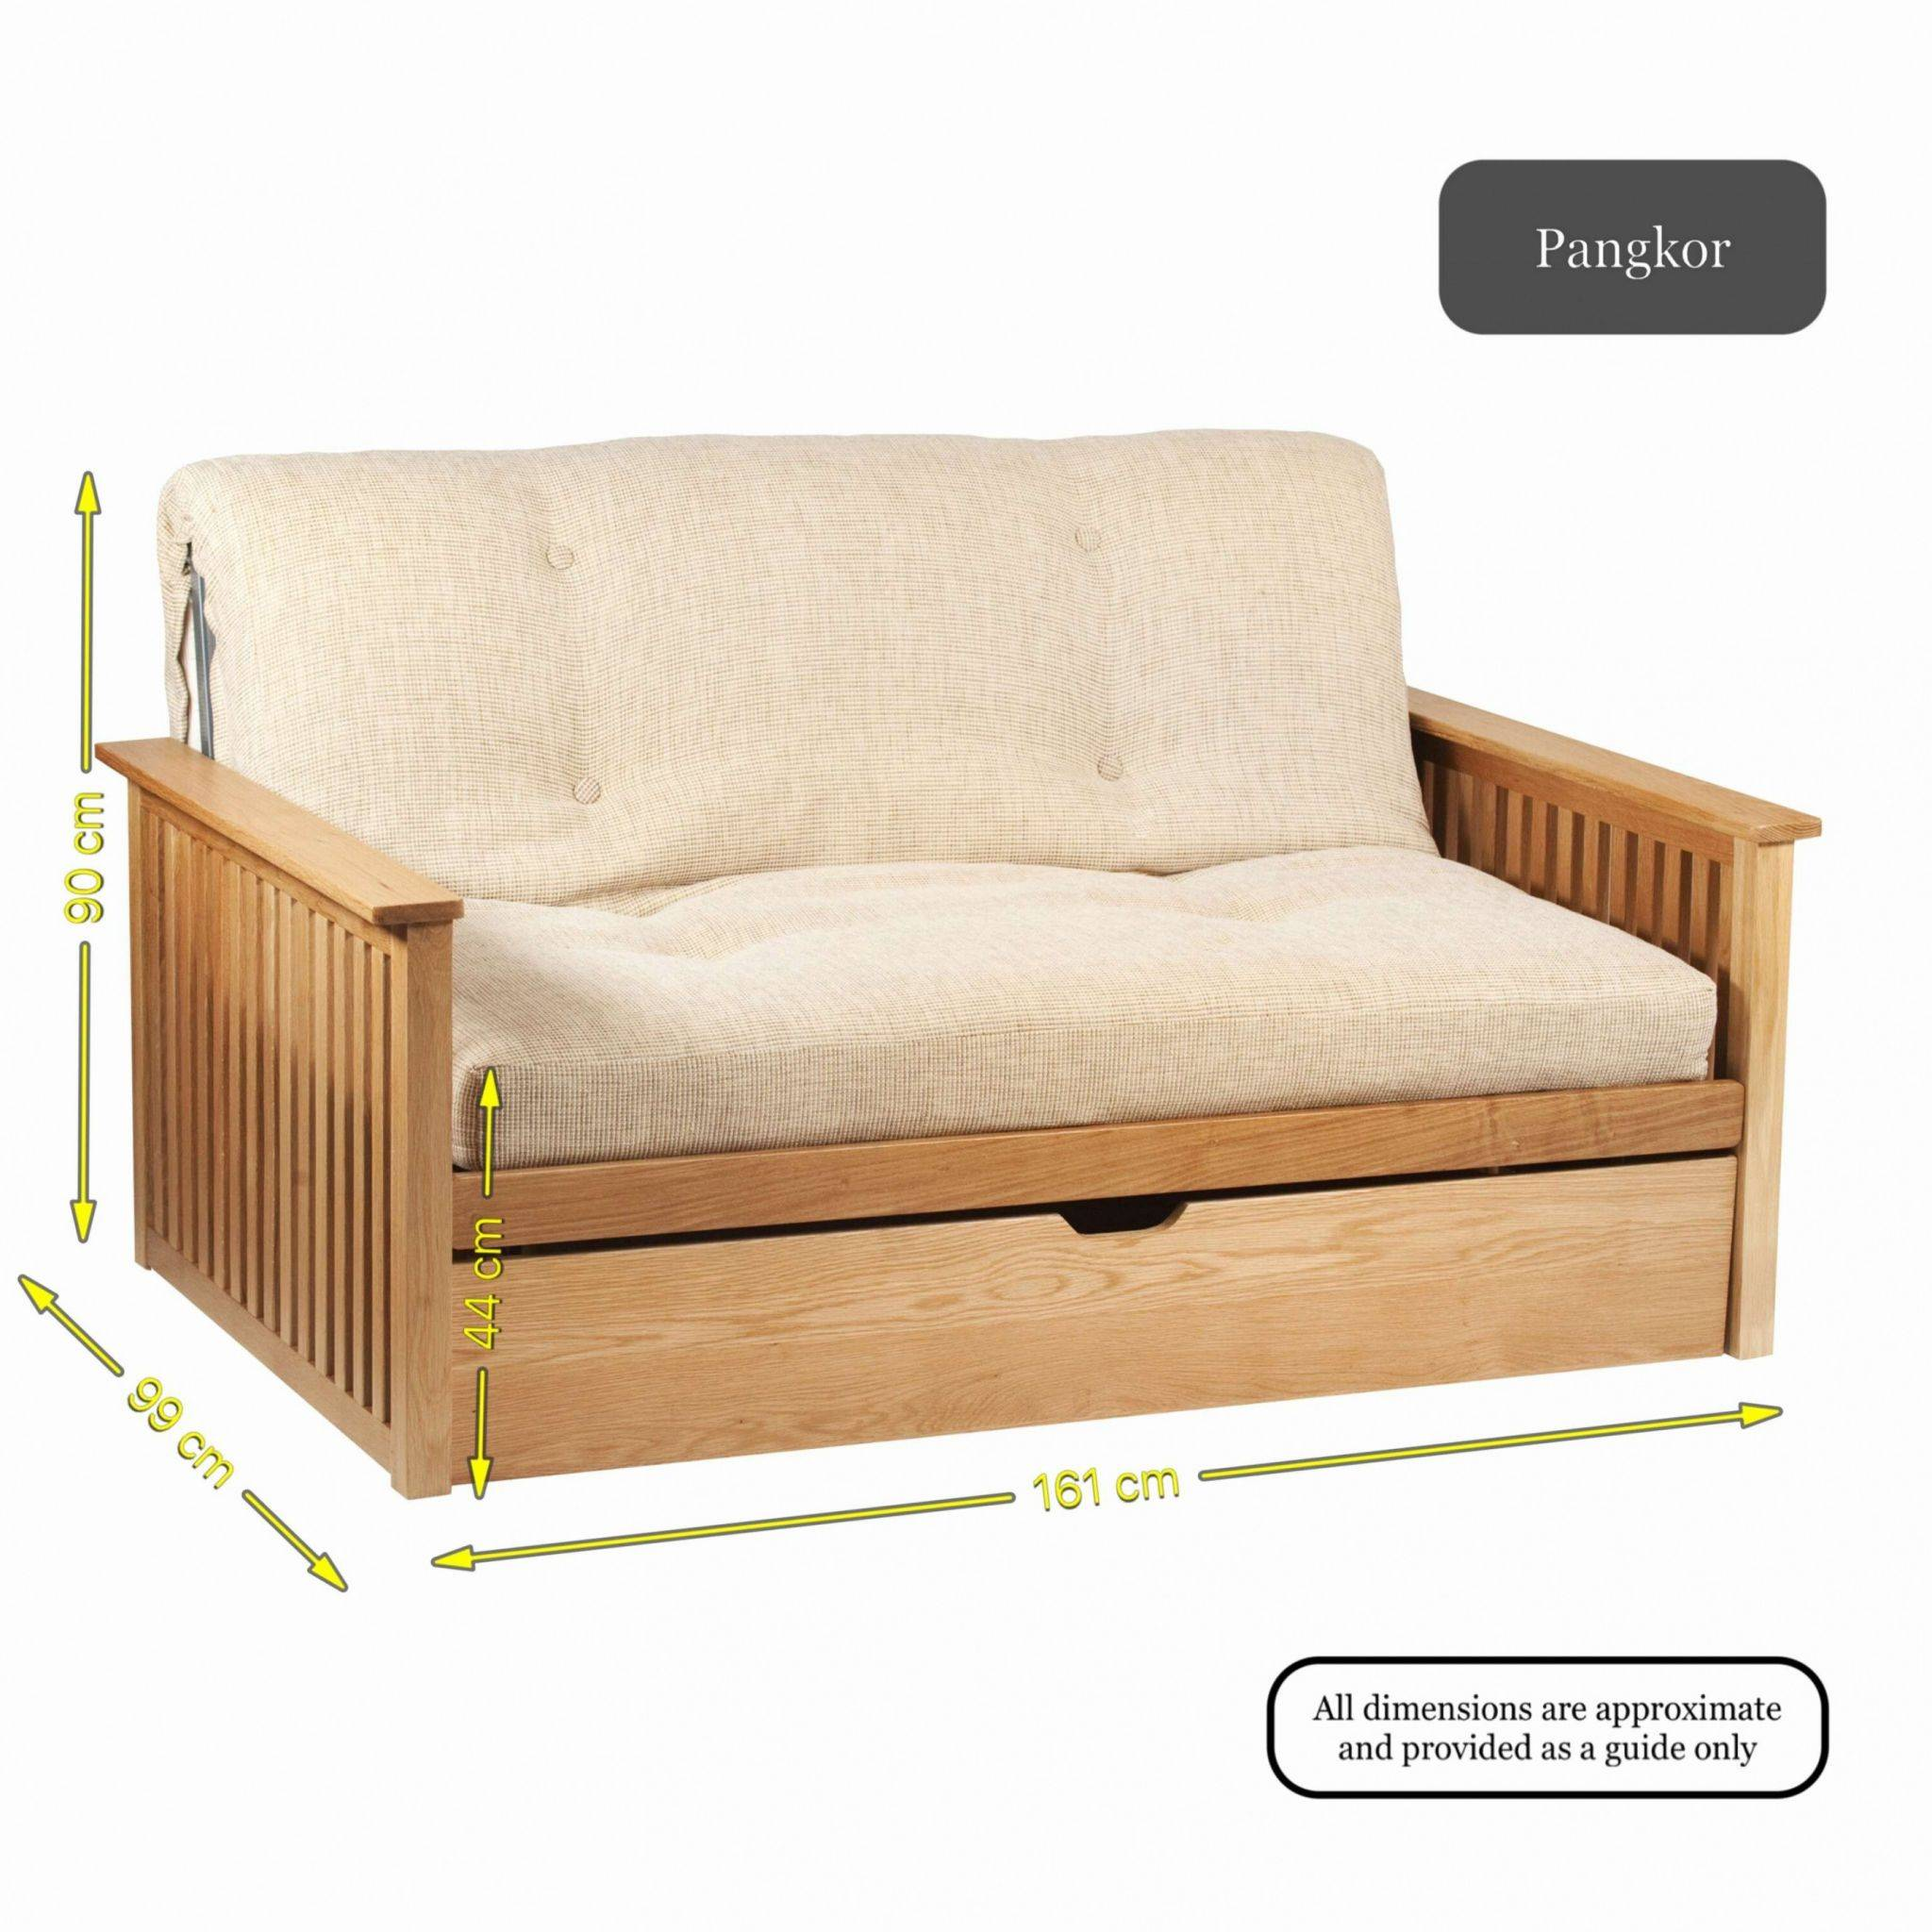 daybed porch swing plans along with outdoor daybed s haccptemperature of daybed porch swing plans